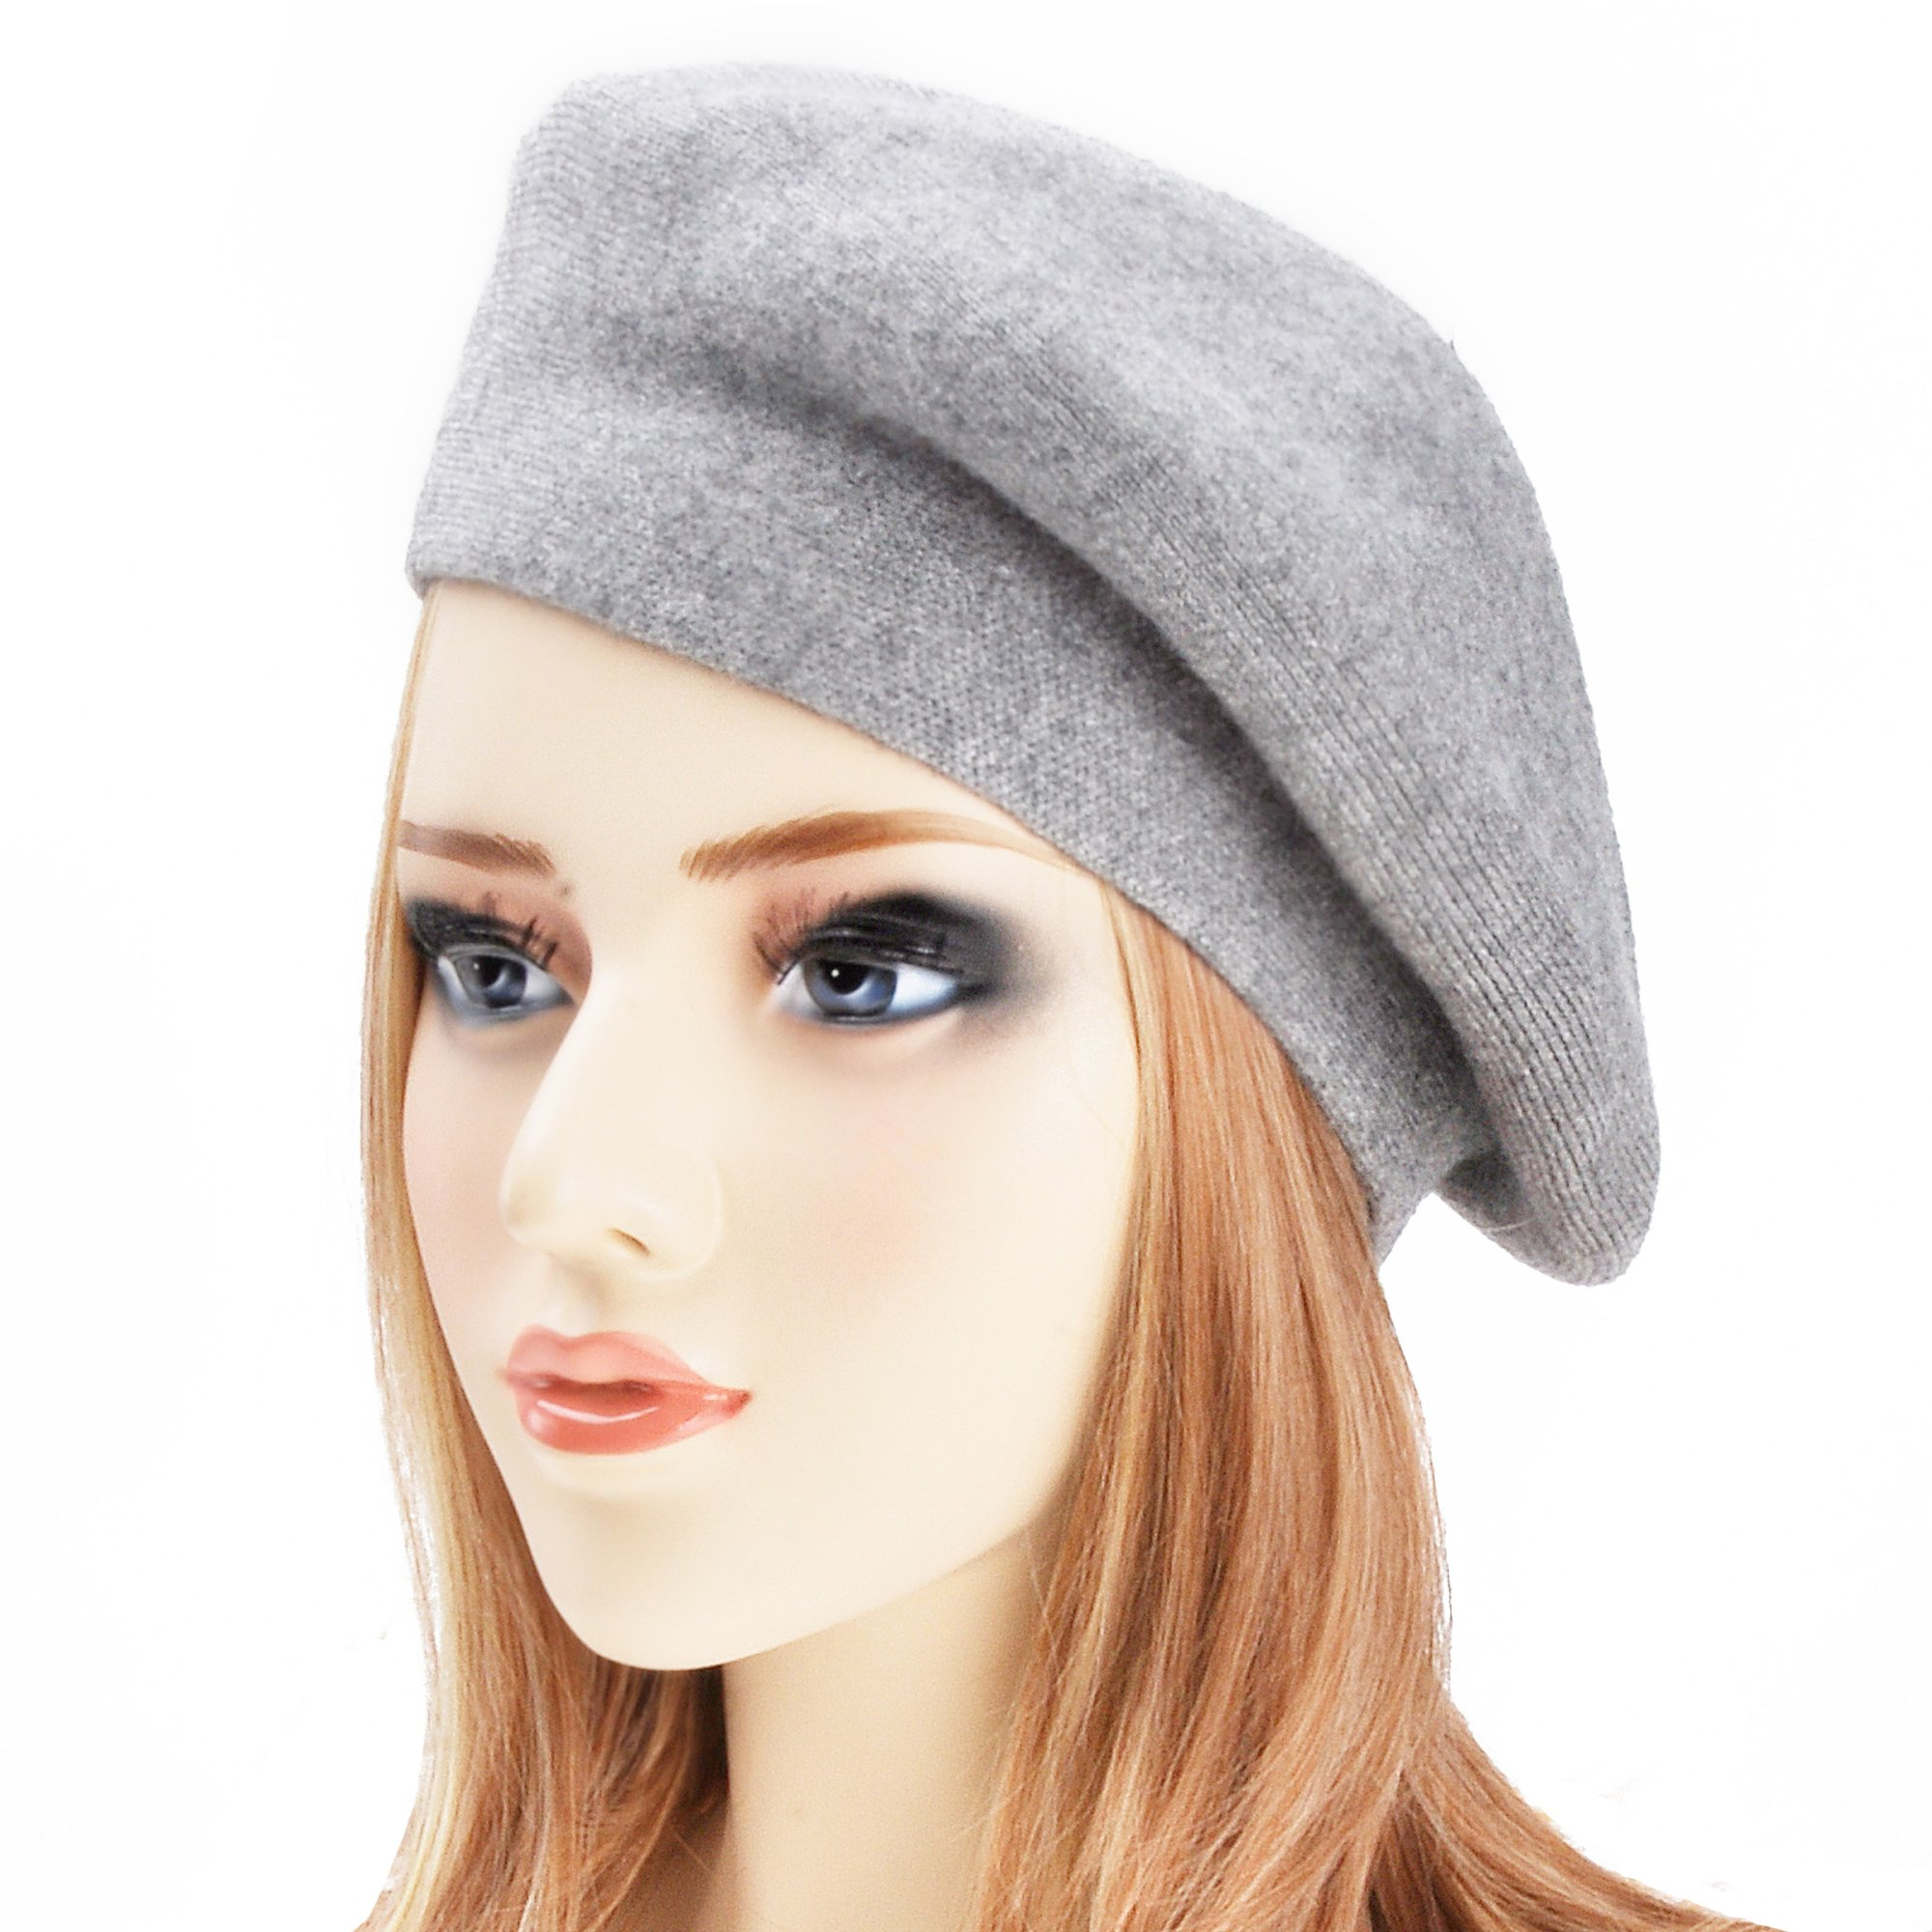 ZLYC Womens Reversible Cashmere Beret Hat Double Layers French Beret, Gray by ZLYC (Image #4)